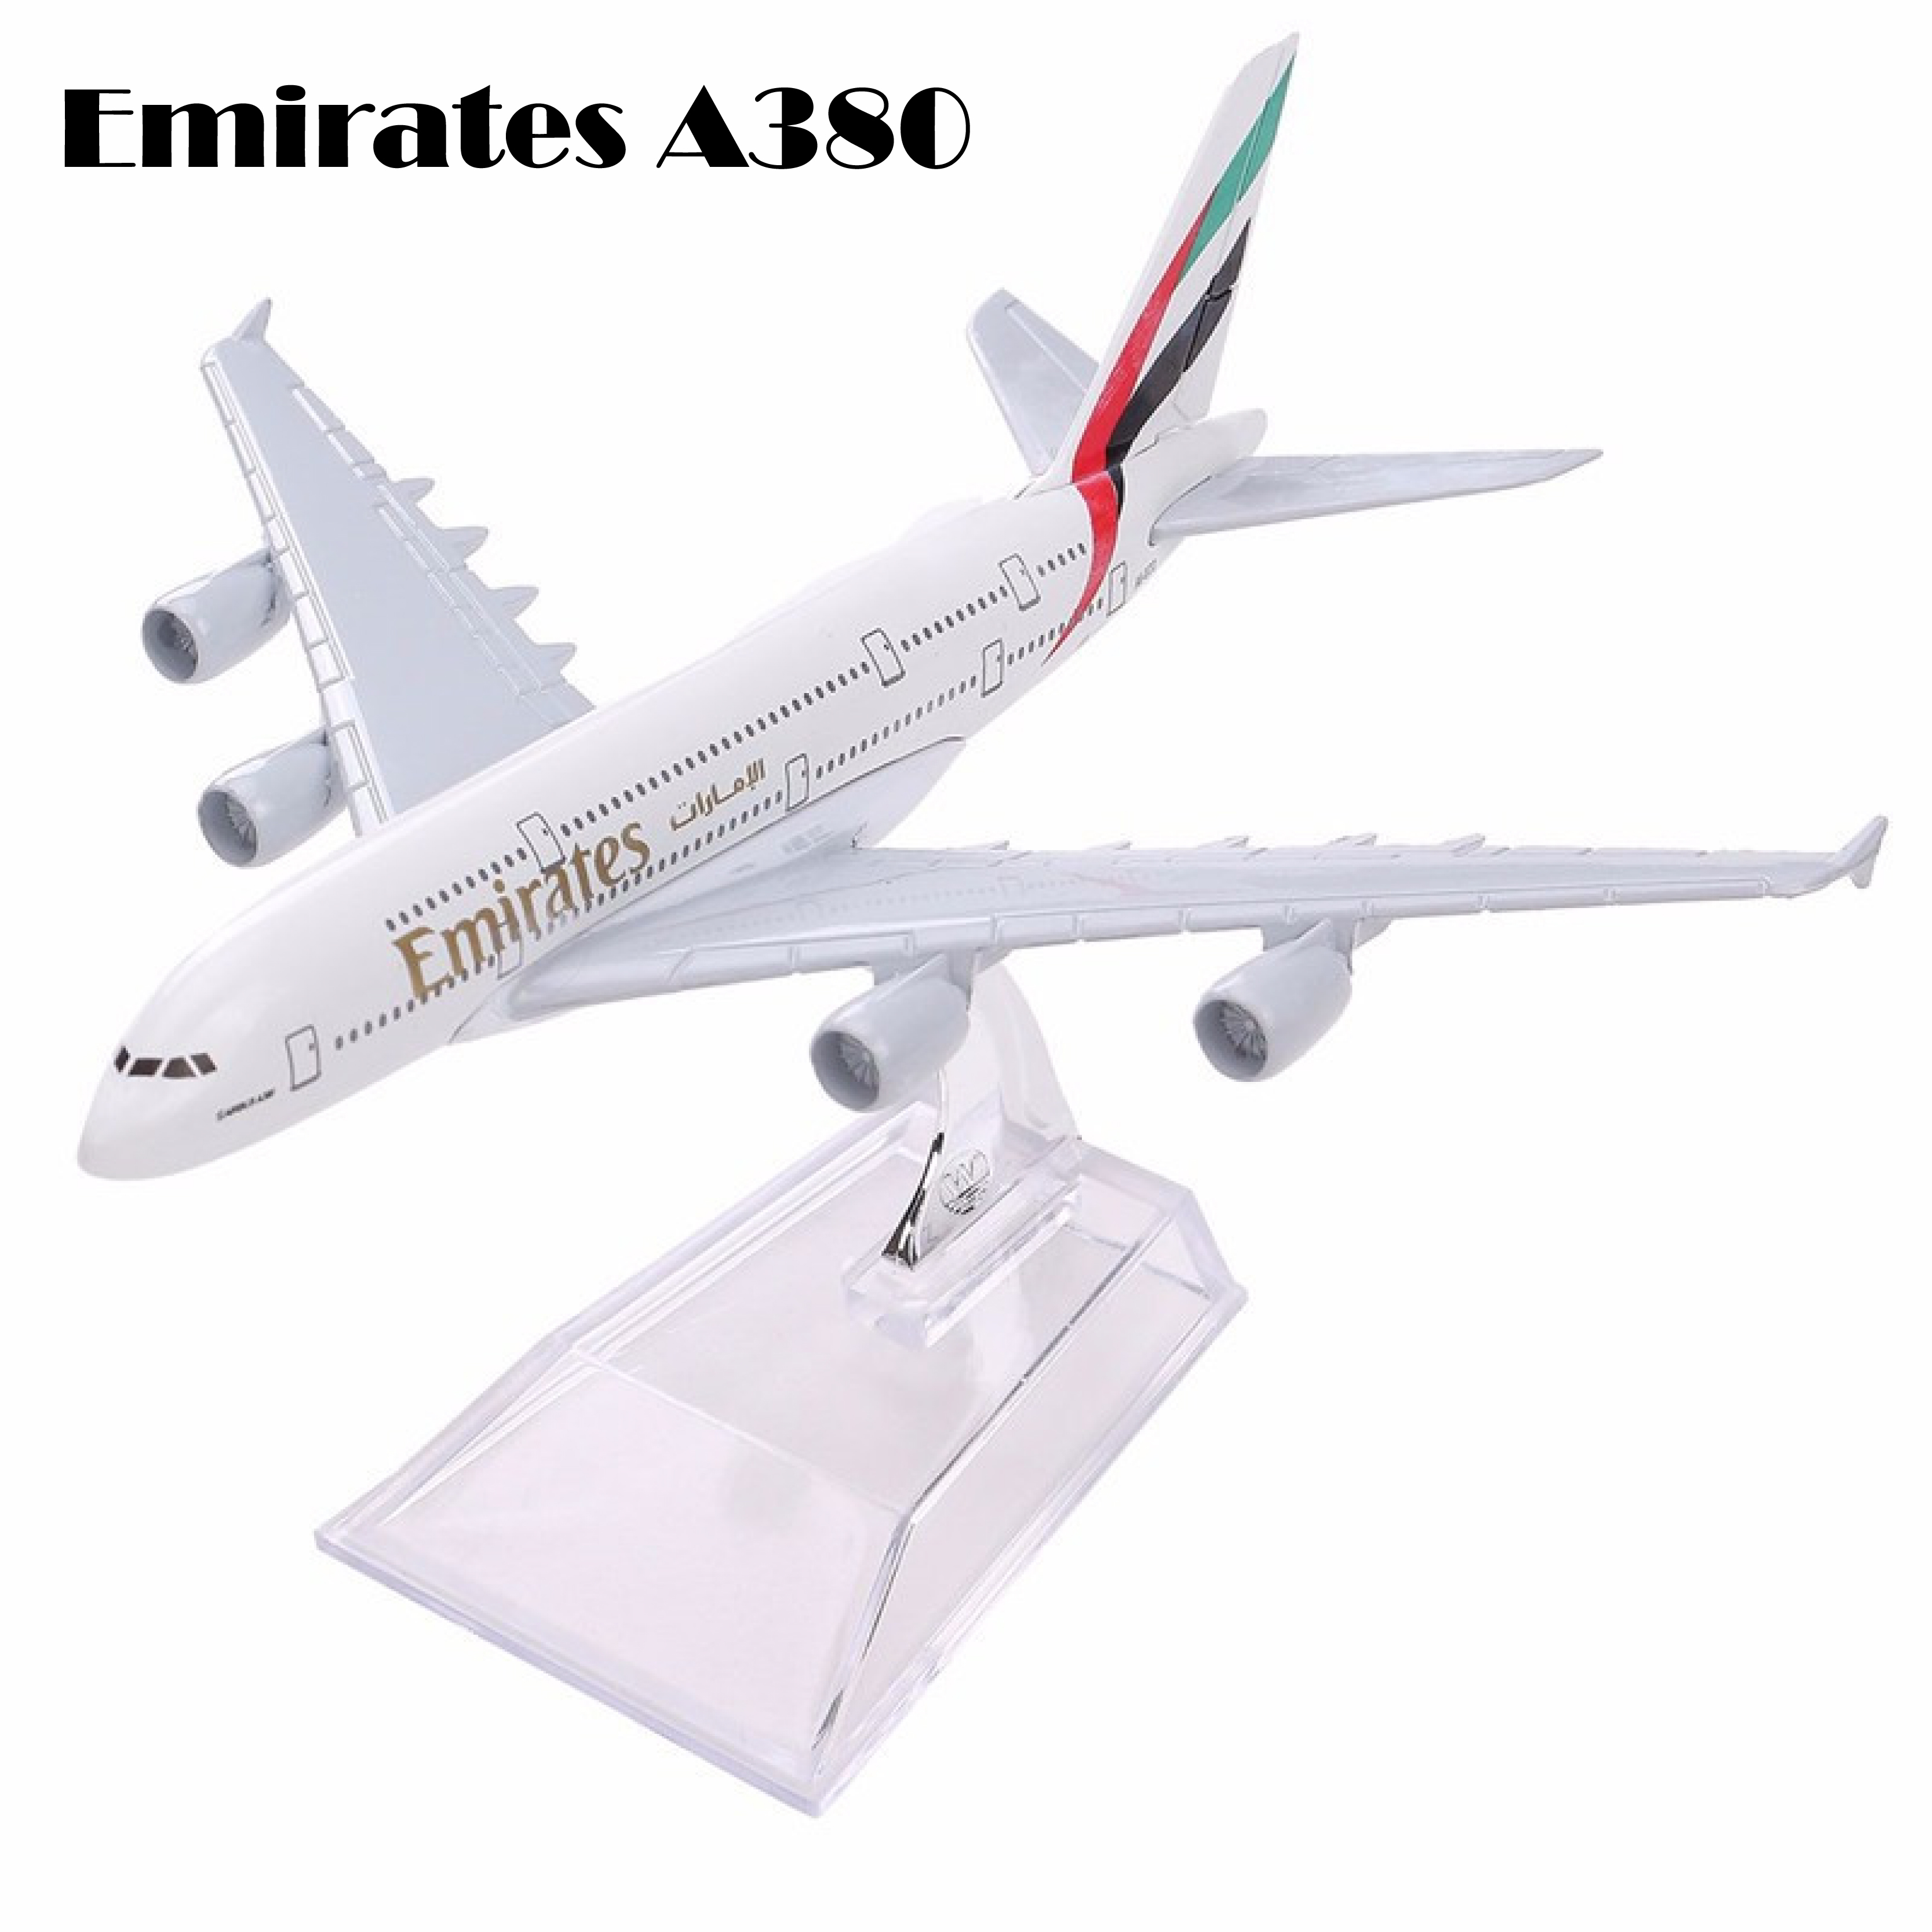 Air Emirates A380 Airlines Airplane Model Airbus 380 Airways 16cm Alloy Metal Plane Model w Stand Aircraft M6-039 Model Plane image